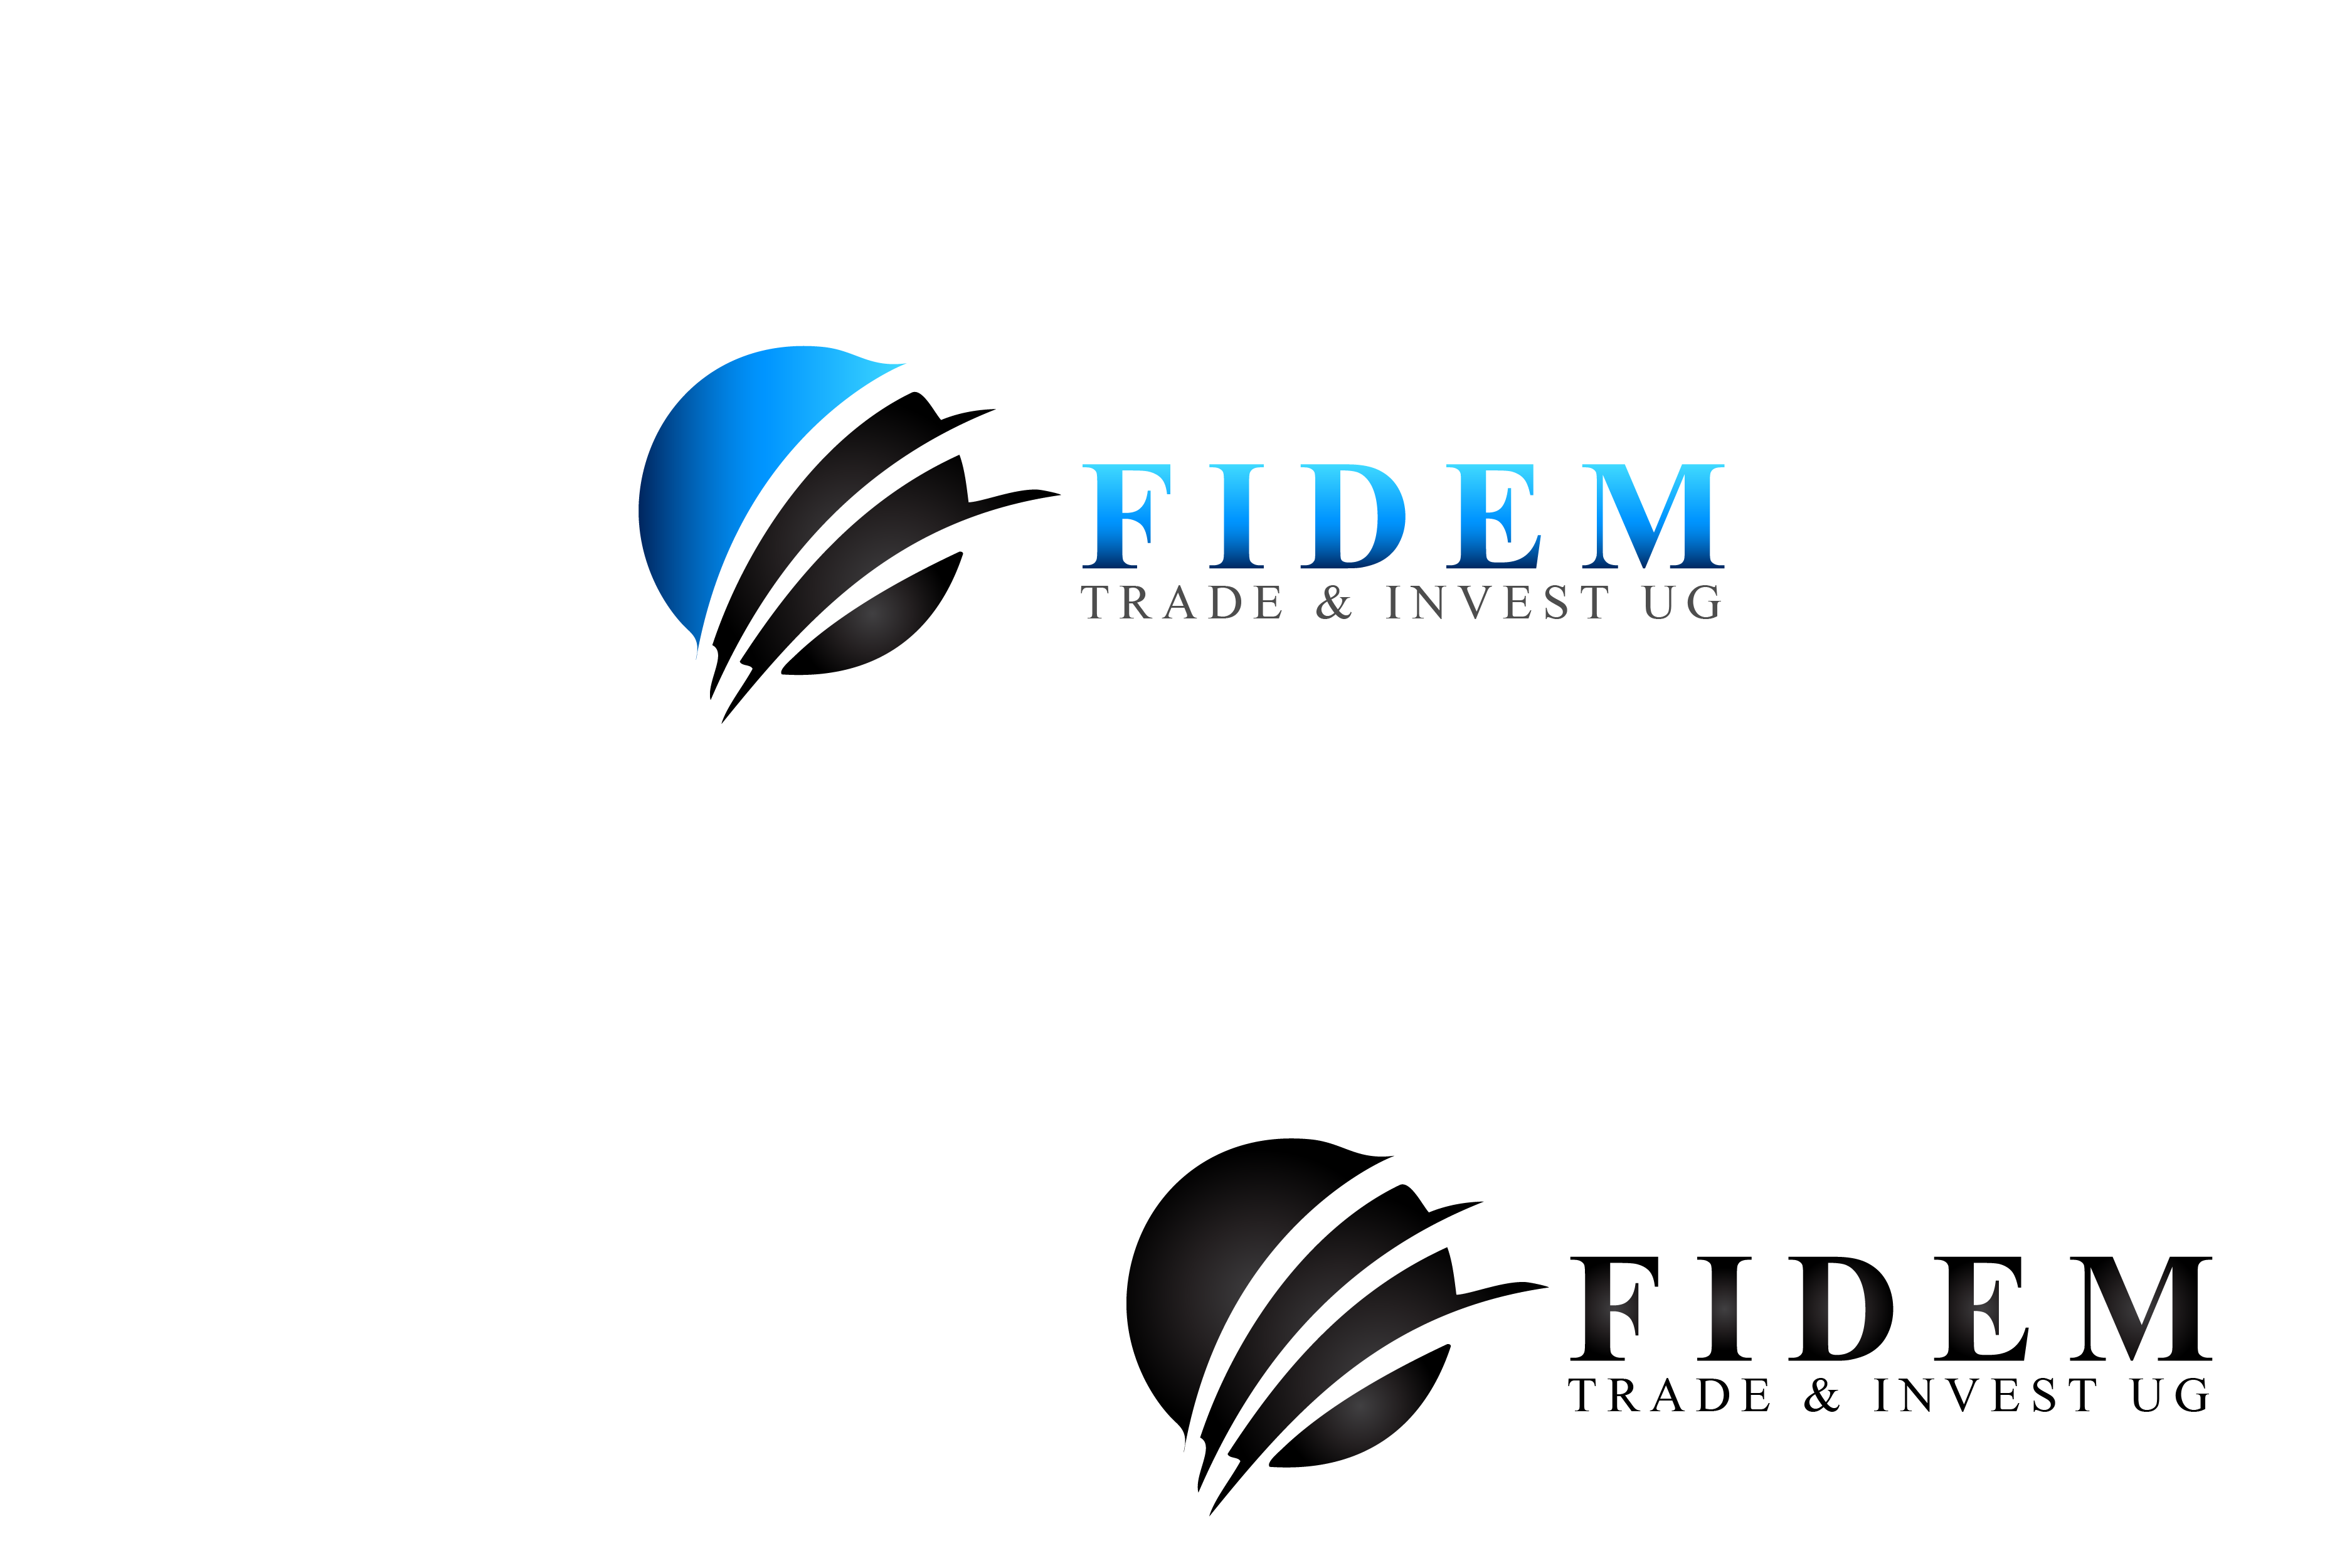 Logo Design by Private User - Entry No. 429 in the Logo Design Contest Professional Logo Design for FIDEM Trade & Invest UG.